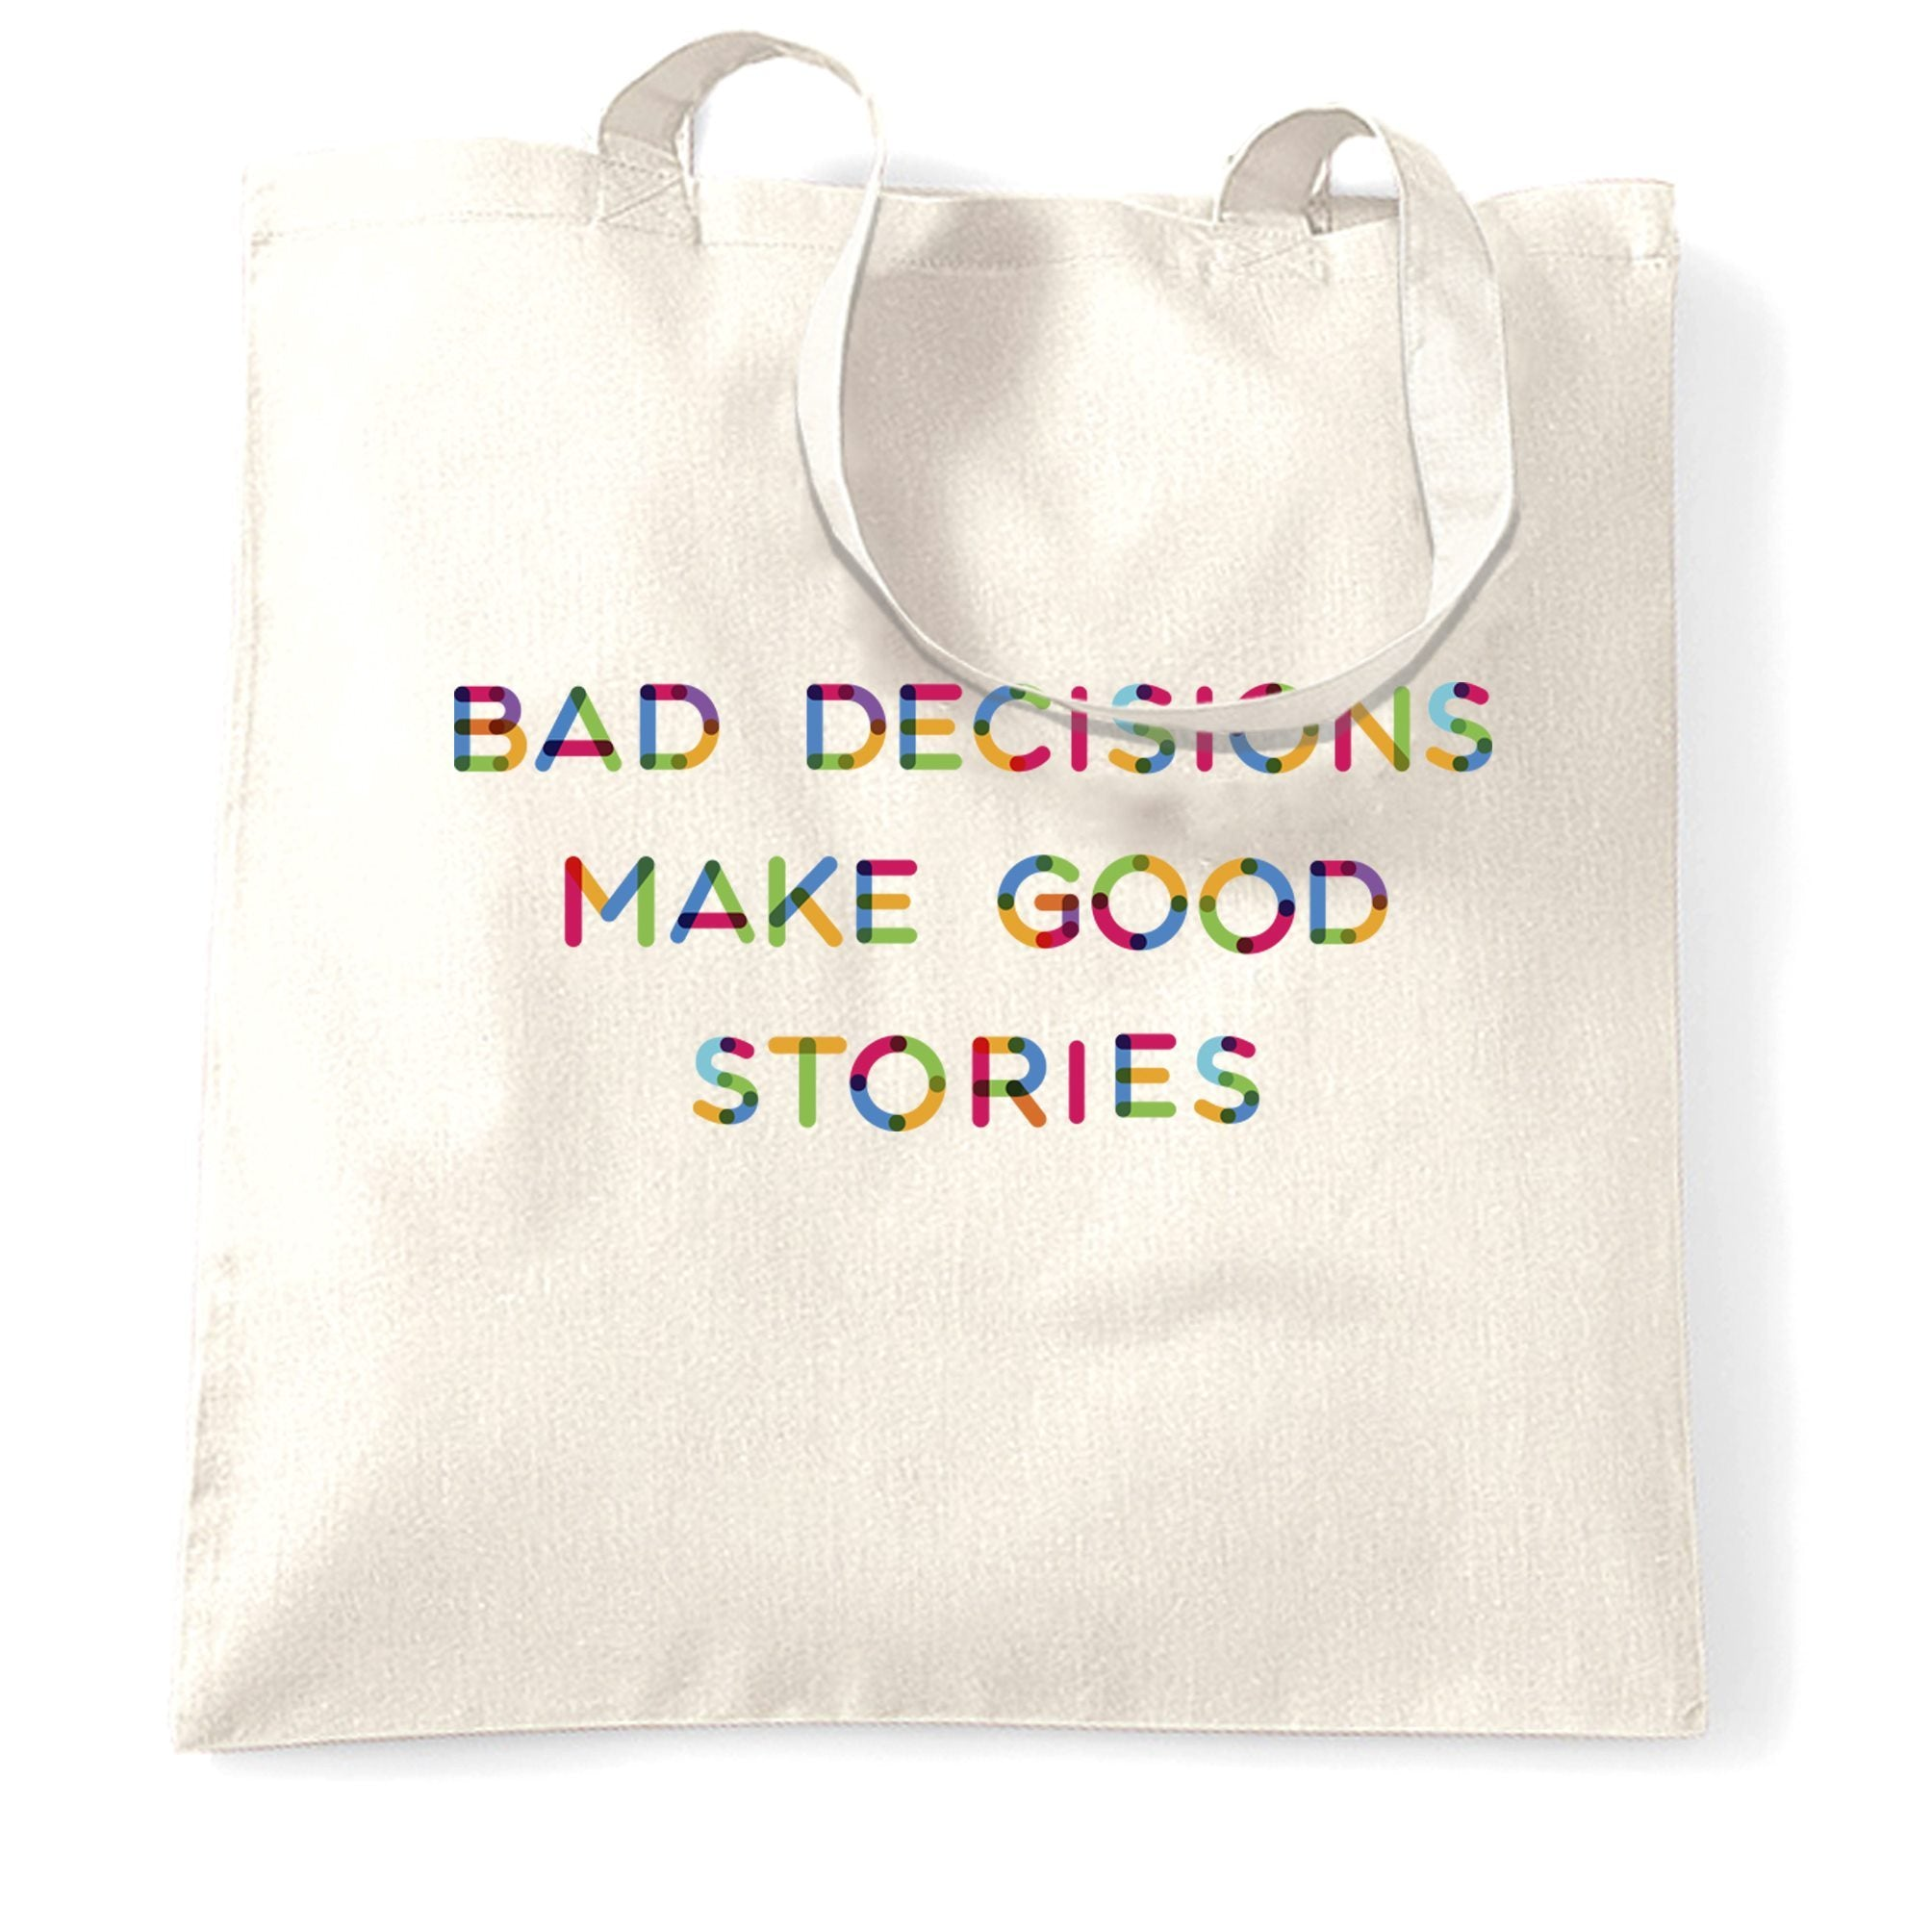 Novelty Slogan Tote Bag Bad Decisions Make Good Stories